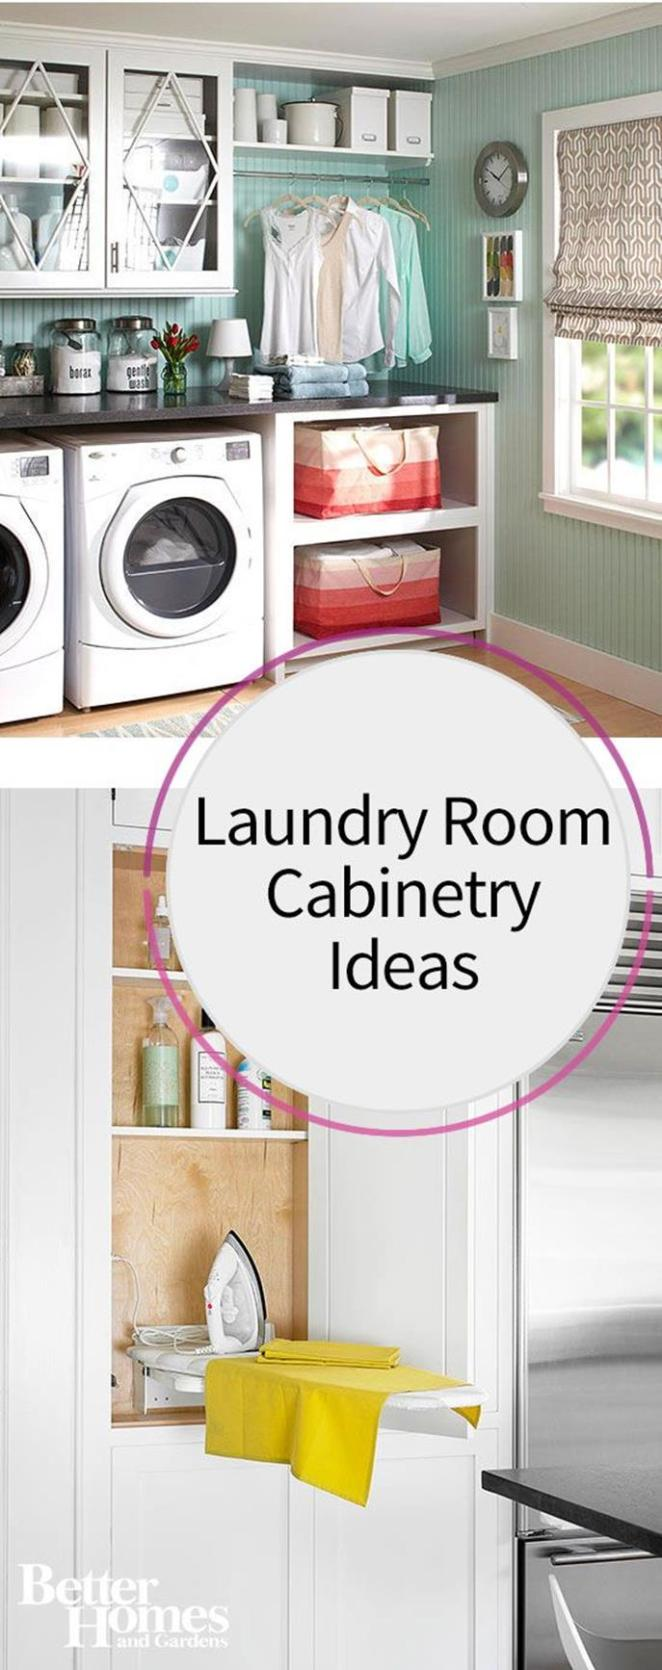 Decorating A Laundry Room On A Budget 6